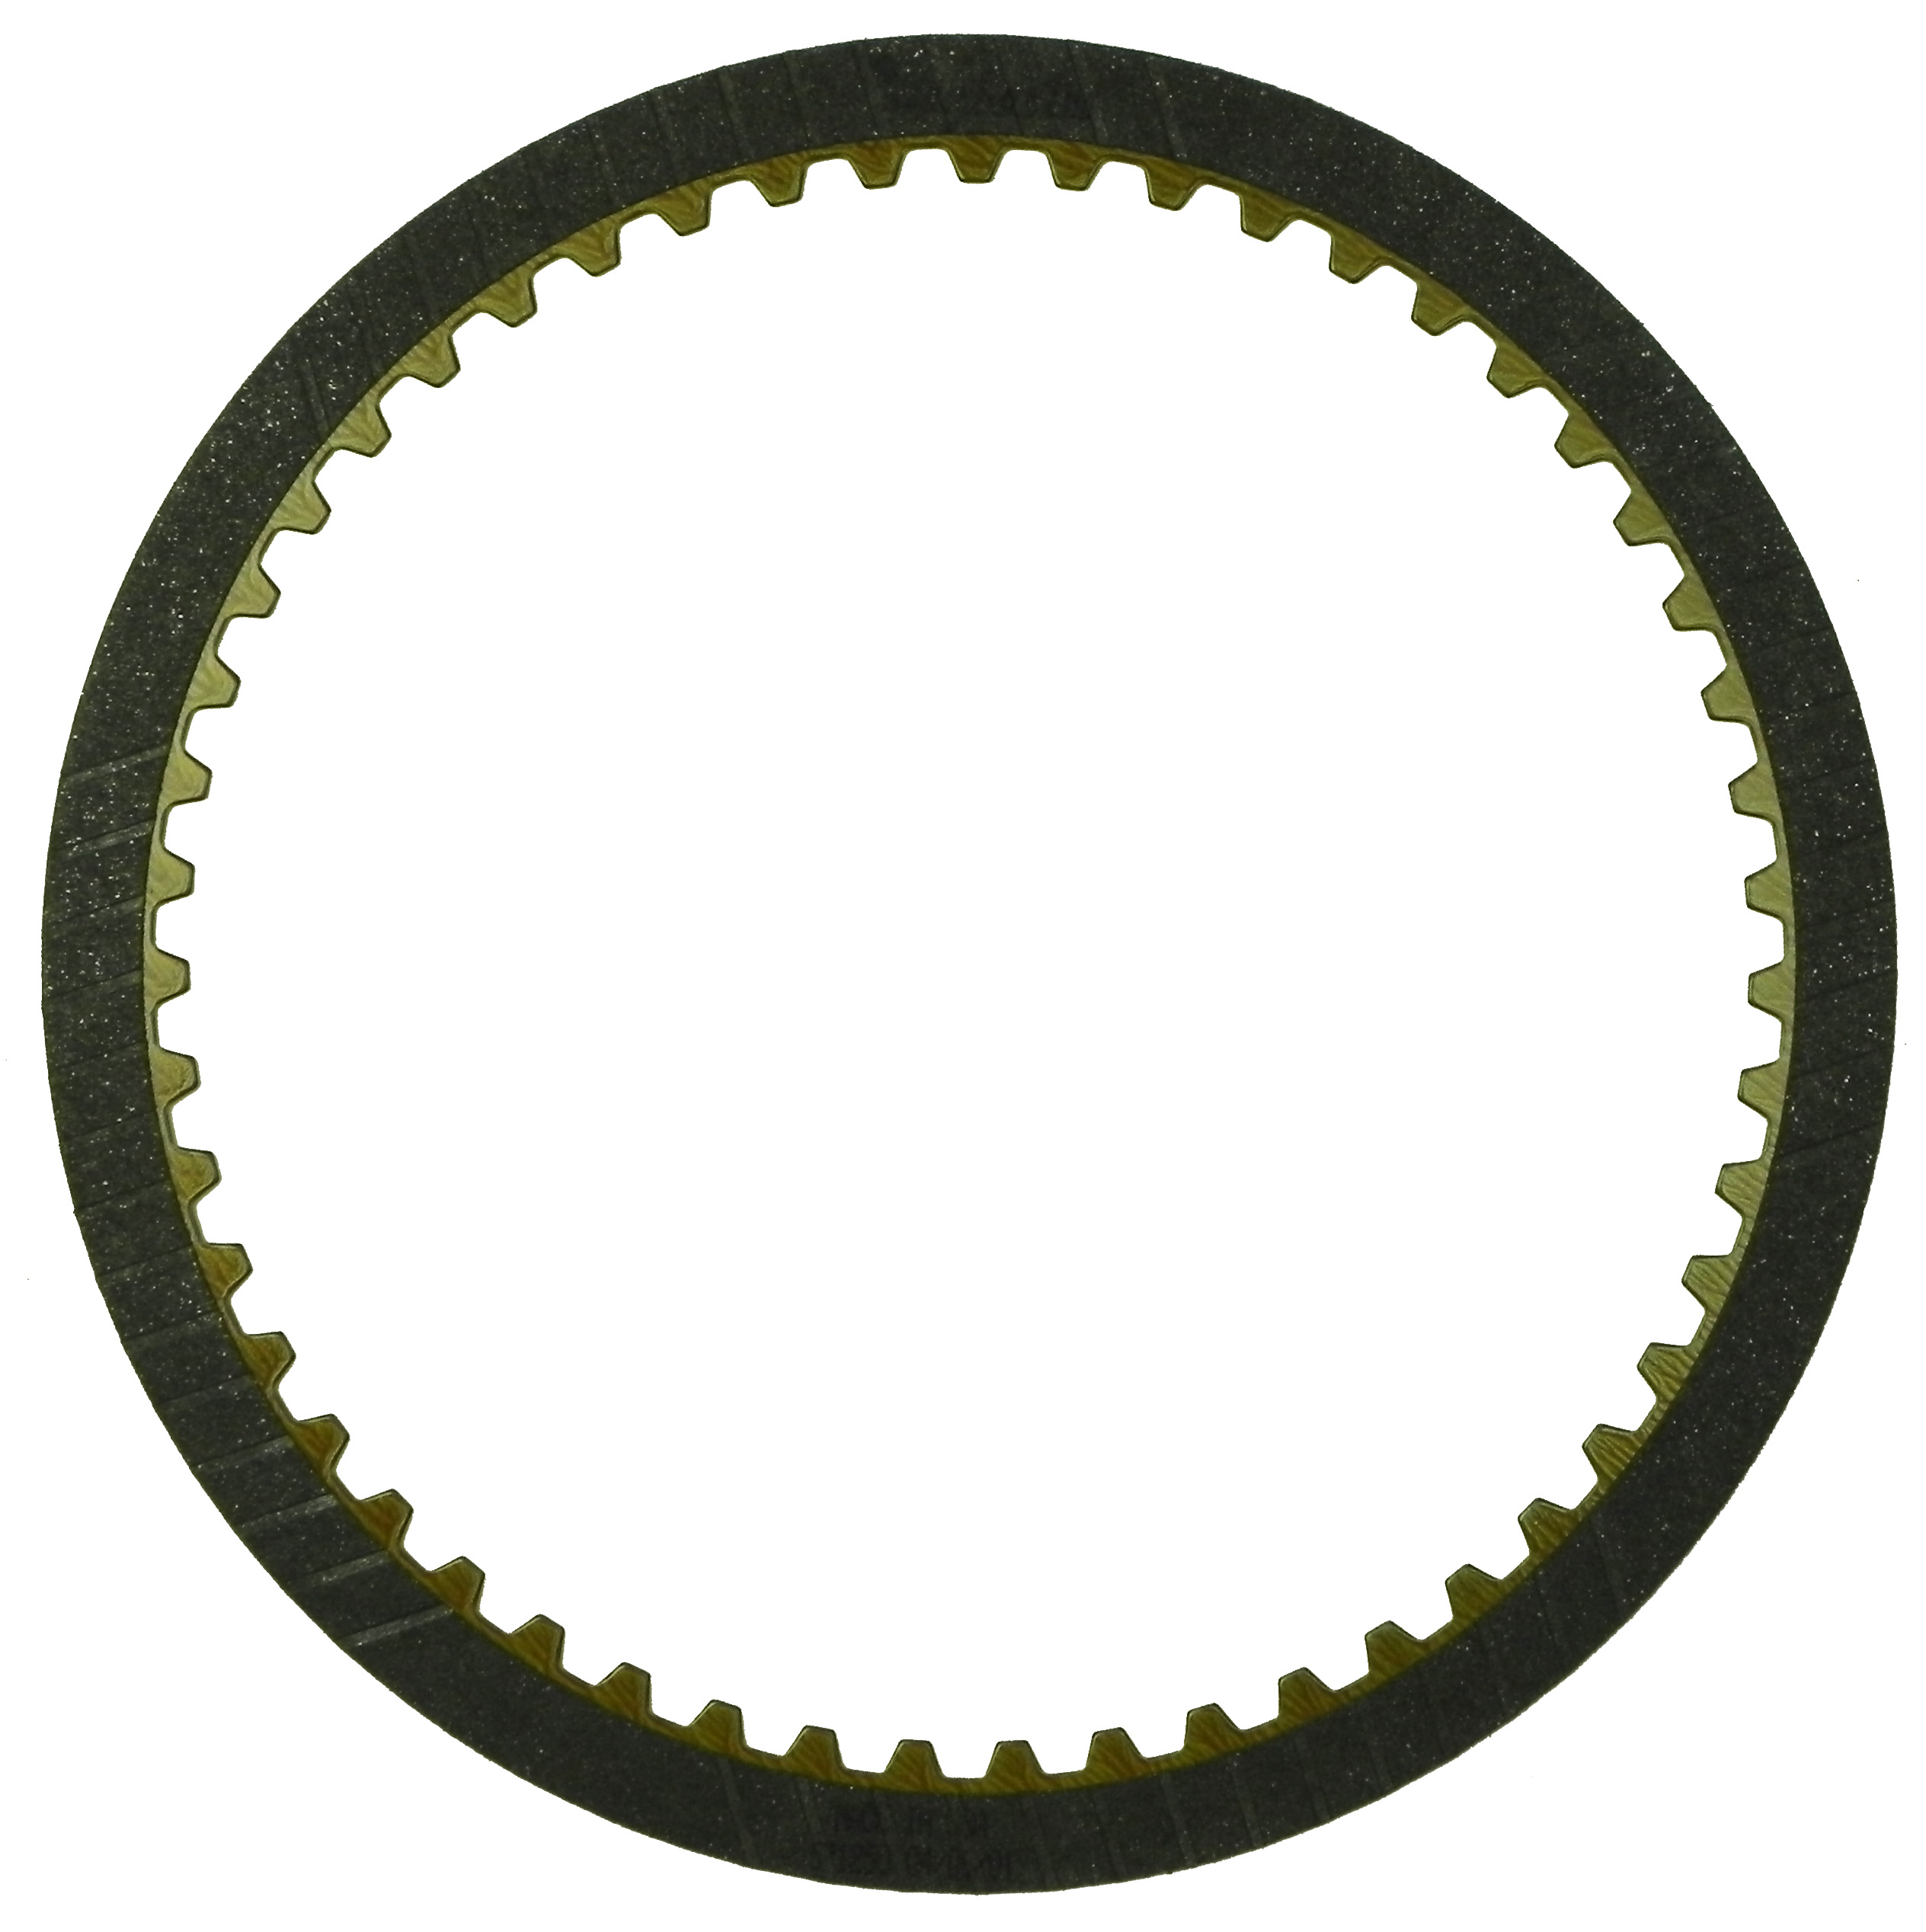 R571250 | 1987-1988 Friction Clutch Plate High Energy Low, Reverse High Energy